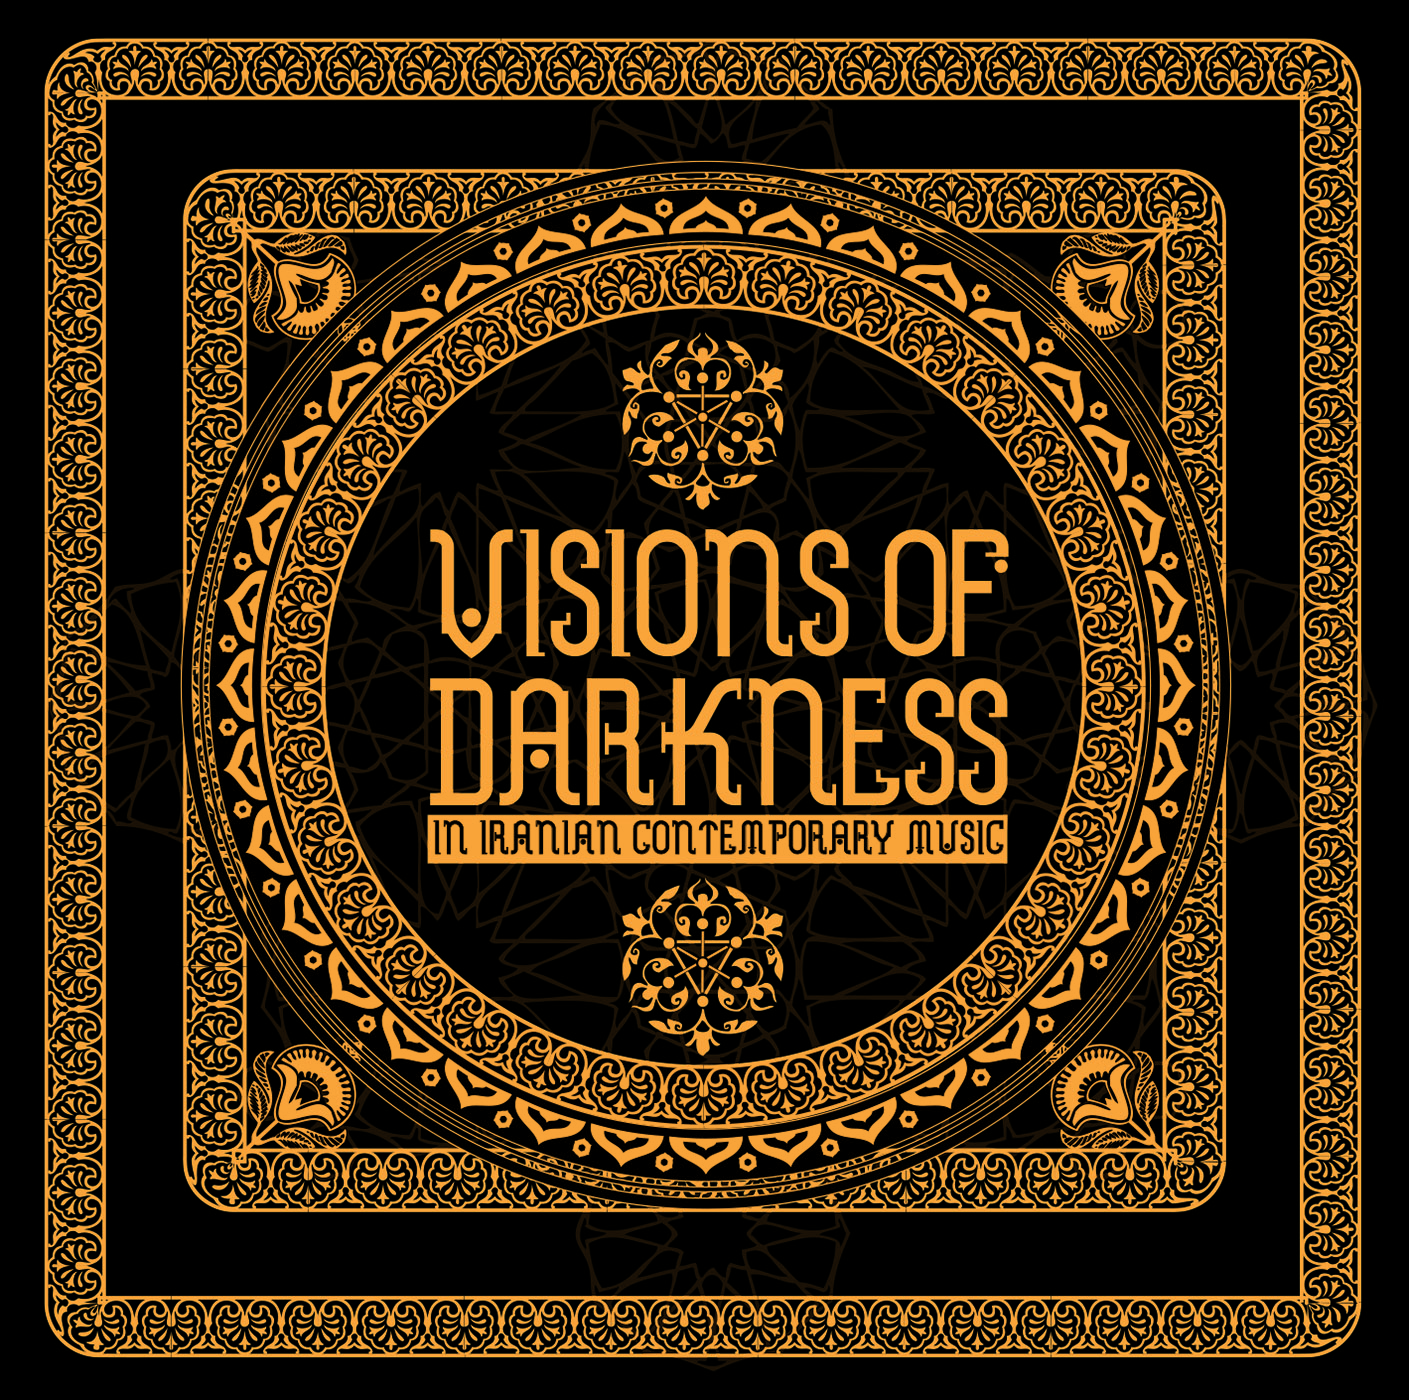 VA Visions Of Darkness - Lo res album cover for web